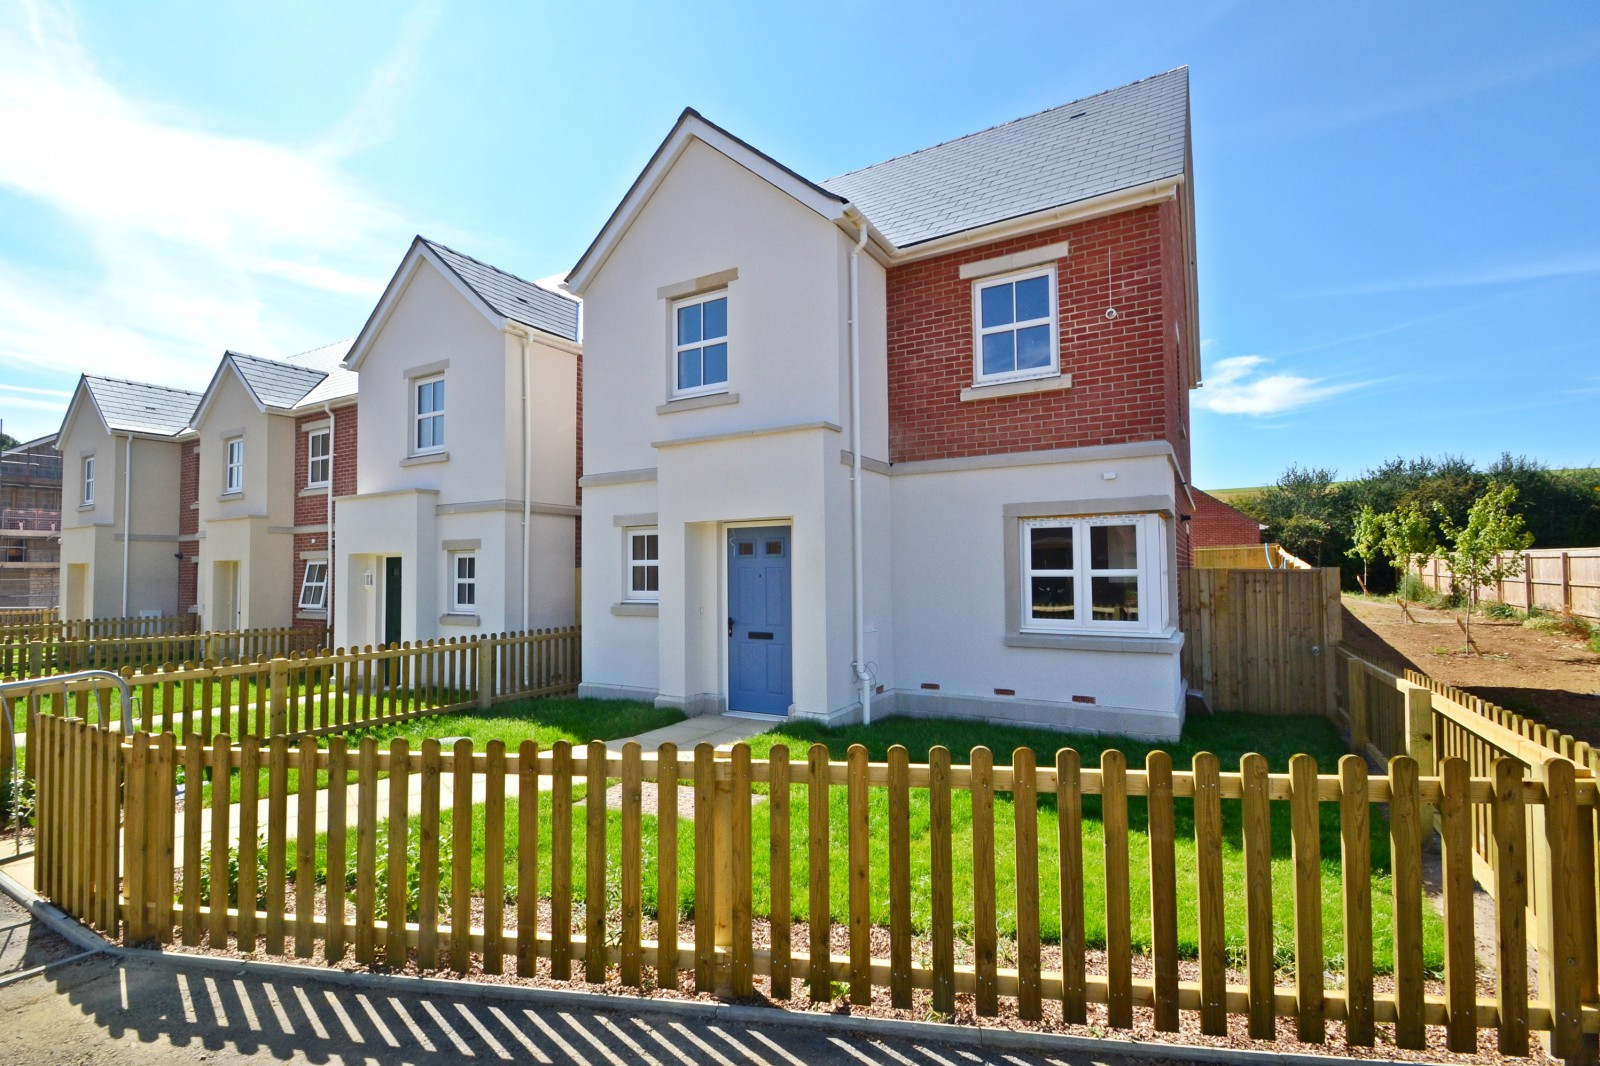 Plot 170 Pemberly, Weymouth